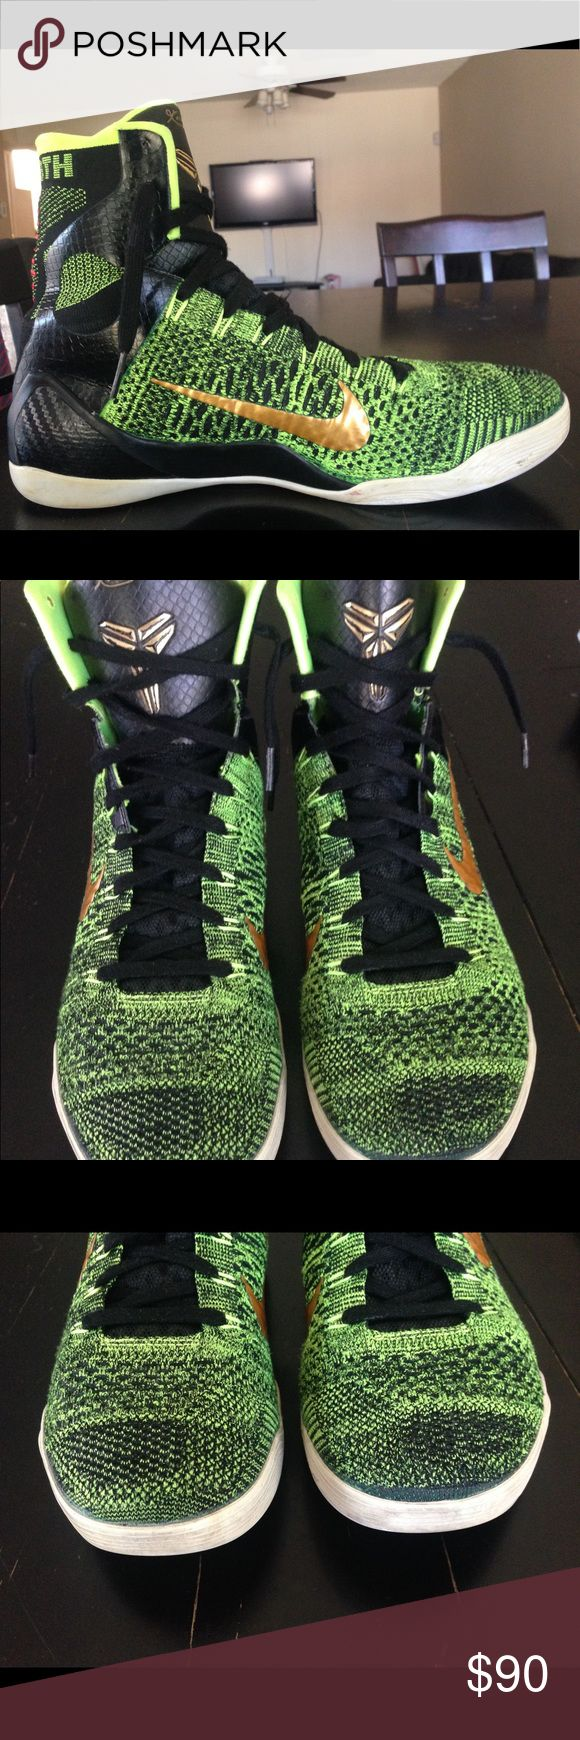 Kobe9 Elite Highs (Victory) - Basketball Shoe Indoors court worn ONLY! Clean and in great condition. No dirt, torn, nor ANY damage to the Fly Knit material.  Beautiful shoe that will catch tons of attention, a KB9 Classic. Nike Shoes Athletic Shoes